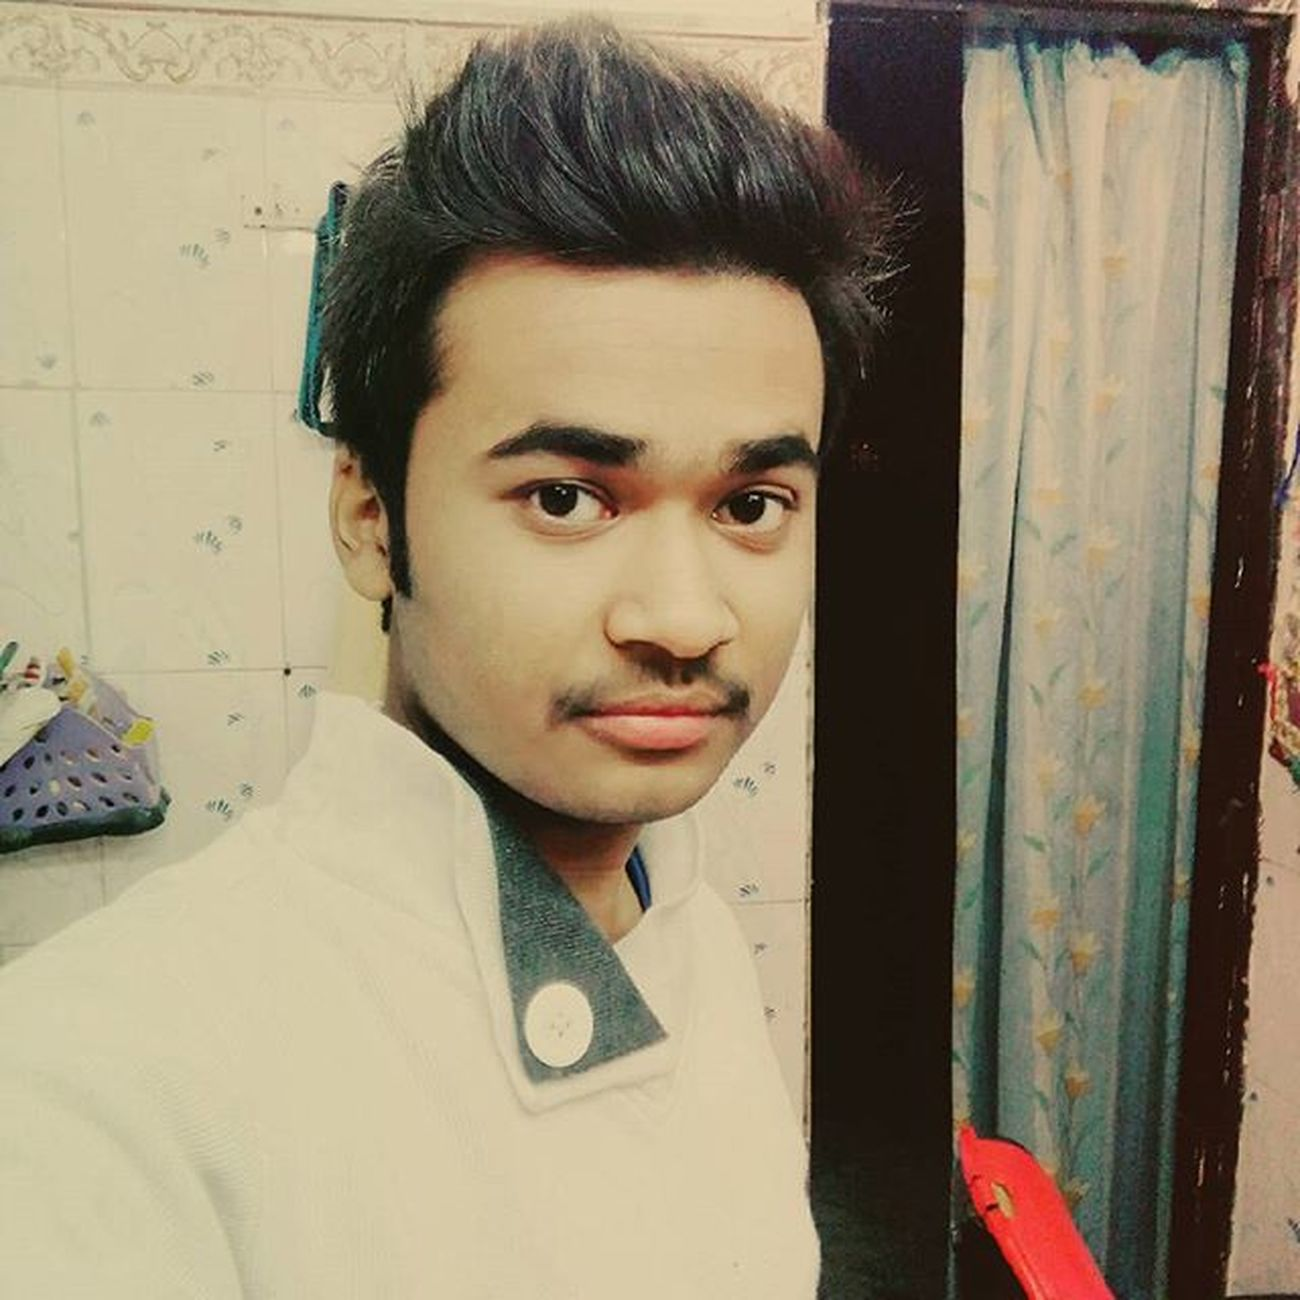 Selfie After LongTime  Love Me Cute Face no Beards Hastags Instalove Ig Instadaily Instagood Doubletap Lfl Fff Followme Swag Swaggy Swagger  Iger Instadict Cool Stud Like follow